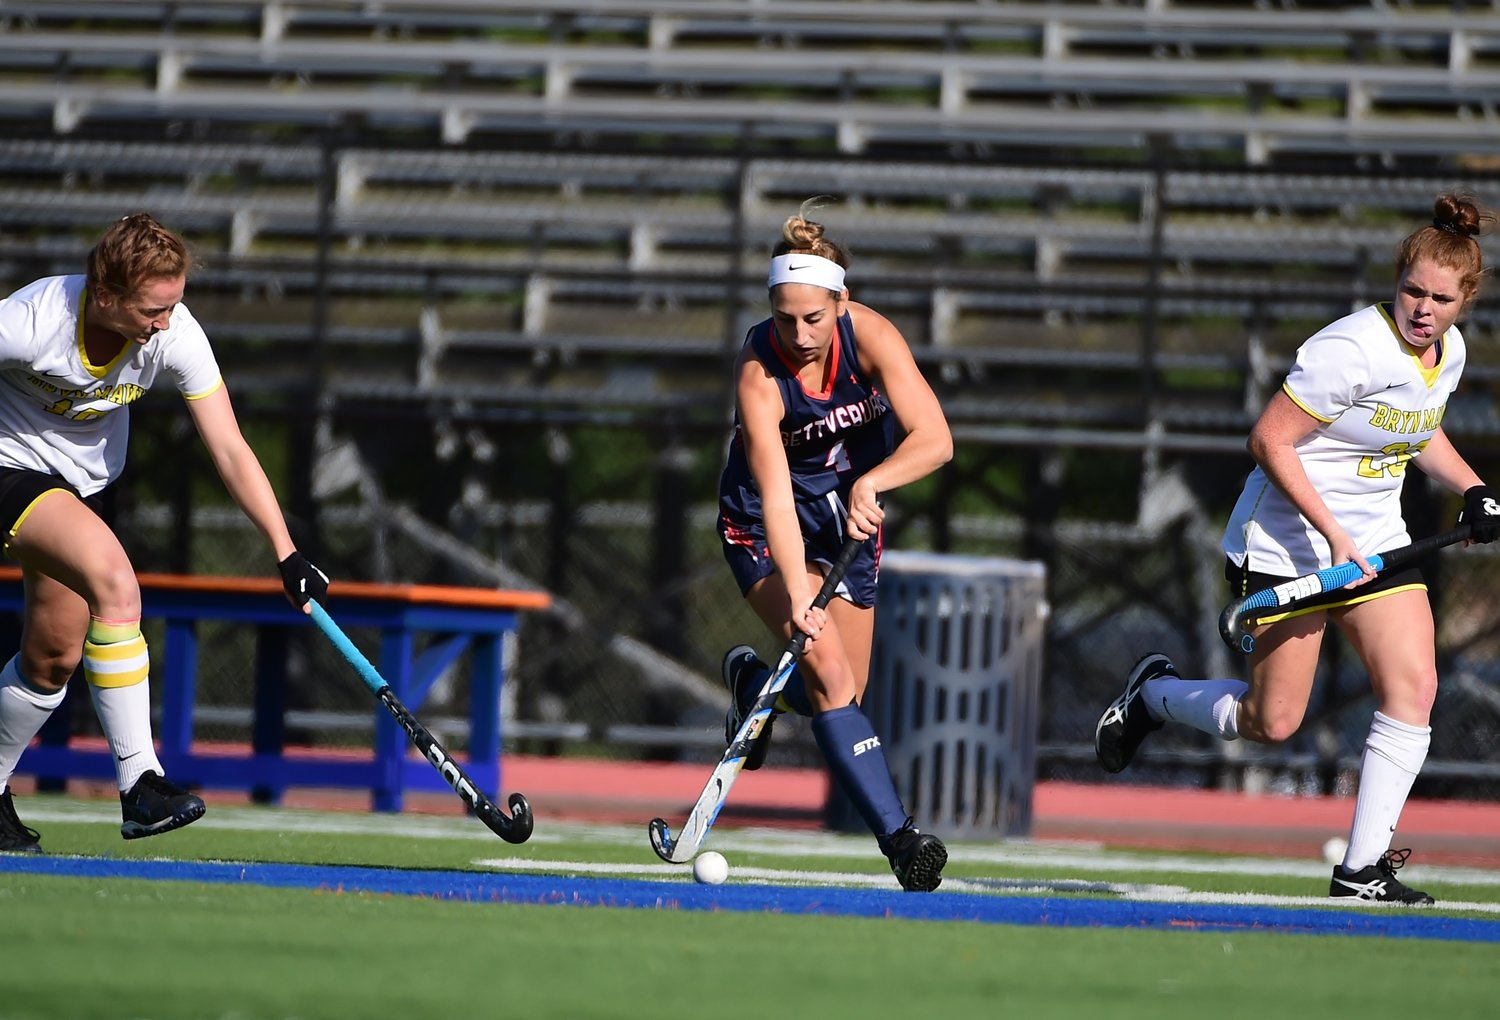 Barrington native Julia Soares (center) has been named to the All-Centennial Conference second team for field hockey. Julia started all 20 games for Gettysburg College this fall and helped lead the Bullets to an 11-9 record overall.